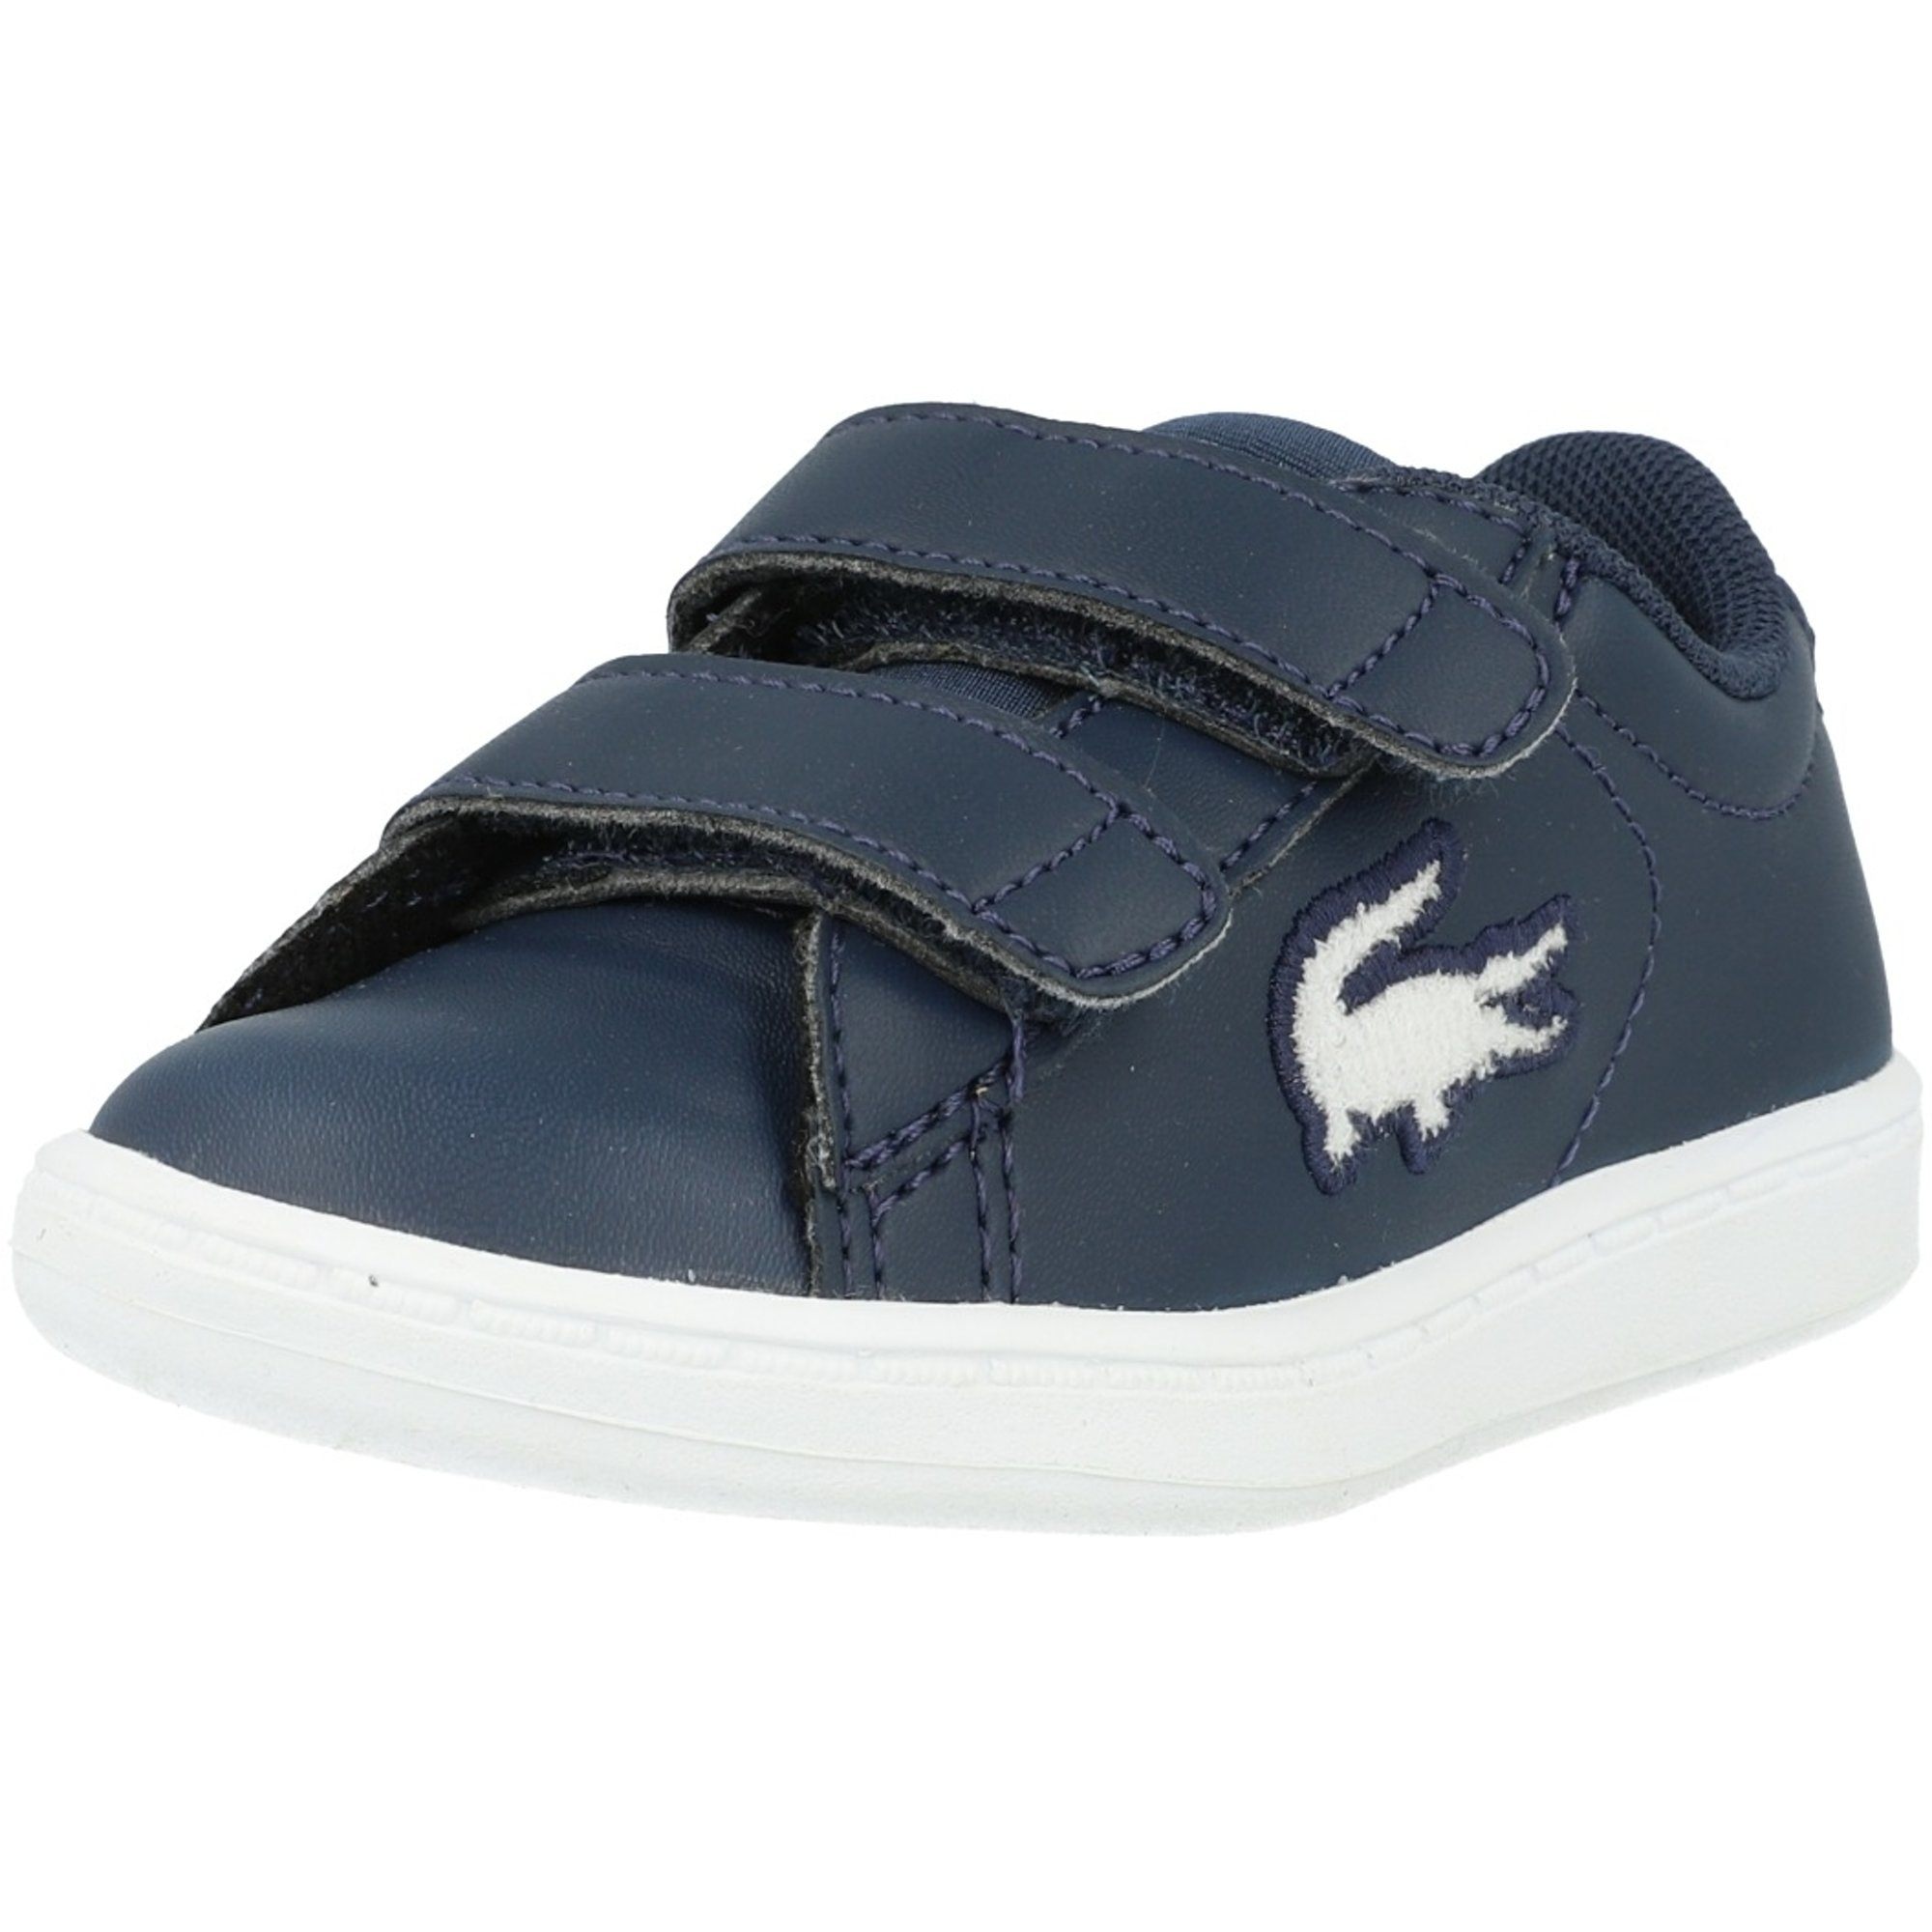 Lacoste Straightset 119 1 White//Navy Synthetic Baby Trainers Shoes